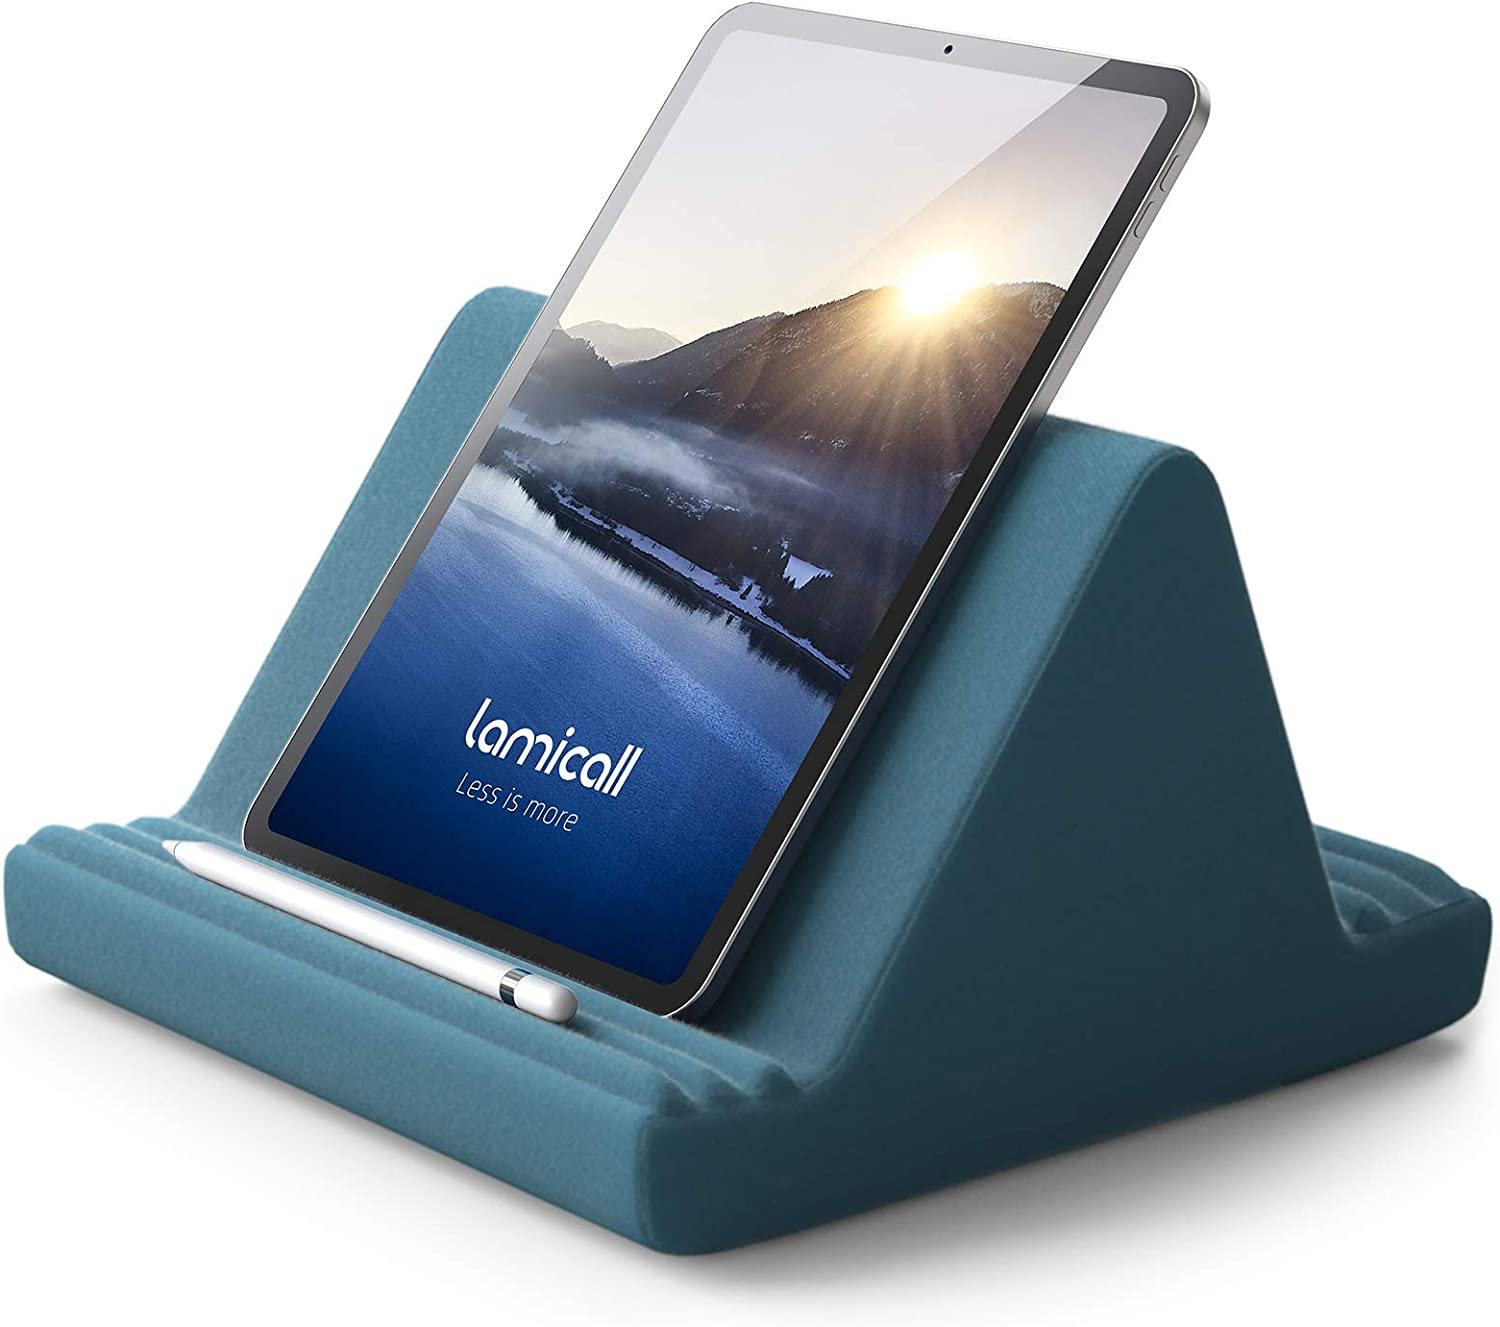 Tablet Pillow Stand, Pillow Soft Pad for Lap - Lamicall Tablet Holder Dock for Bed with 6 Viewing Angles, for iPad Pro 9.7, 10.5,12.9 Air Mini 4 3, Kindle, Galaxy Tab, E-Reader - Blackish Green